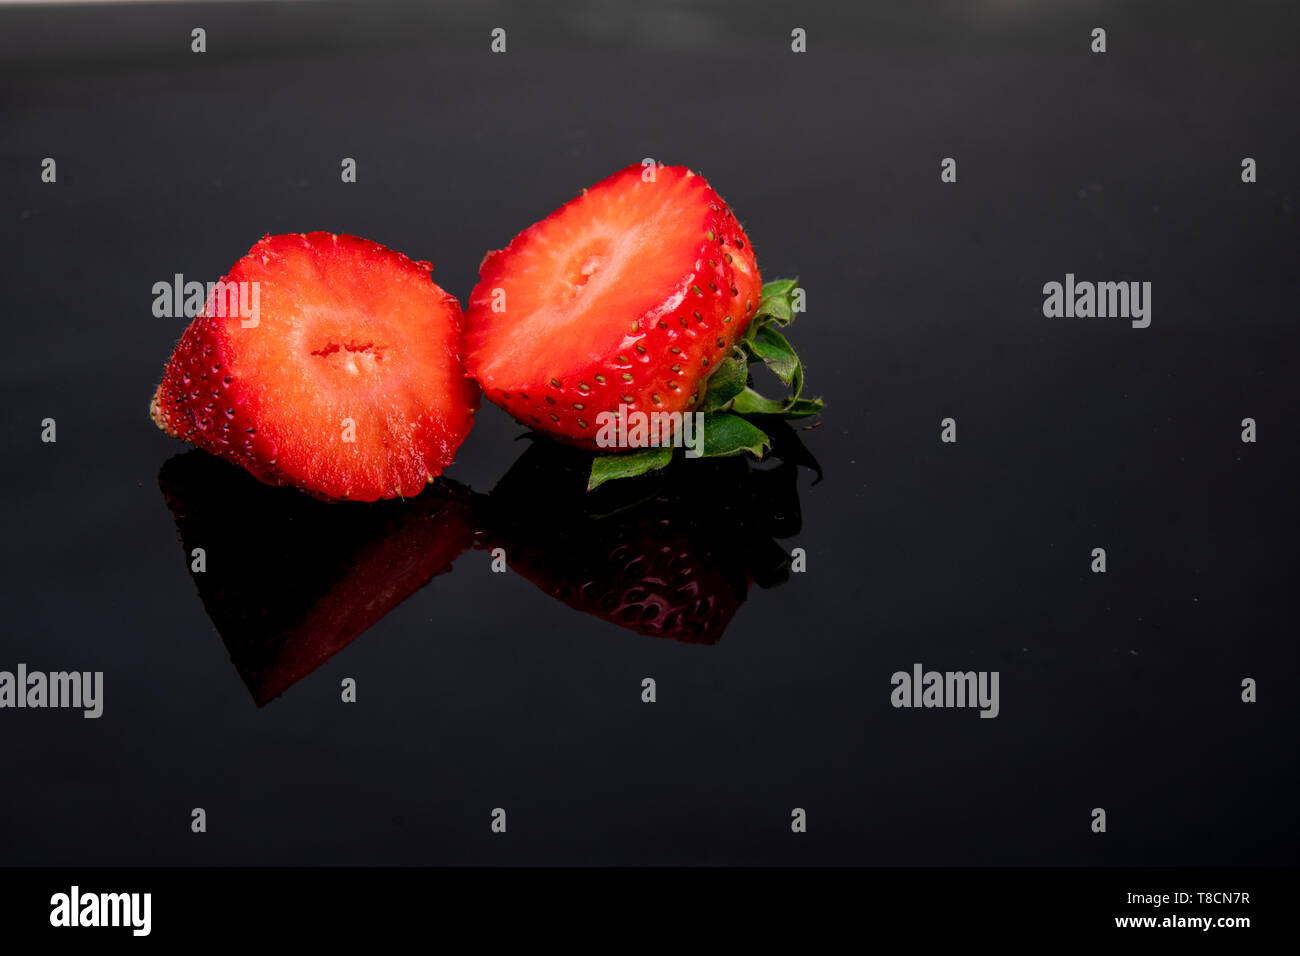 fresh strawberry rich in vitamins cut open on a dark background - Stock Image